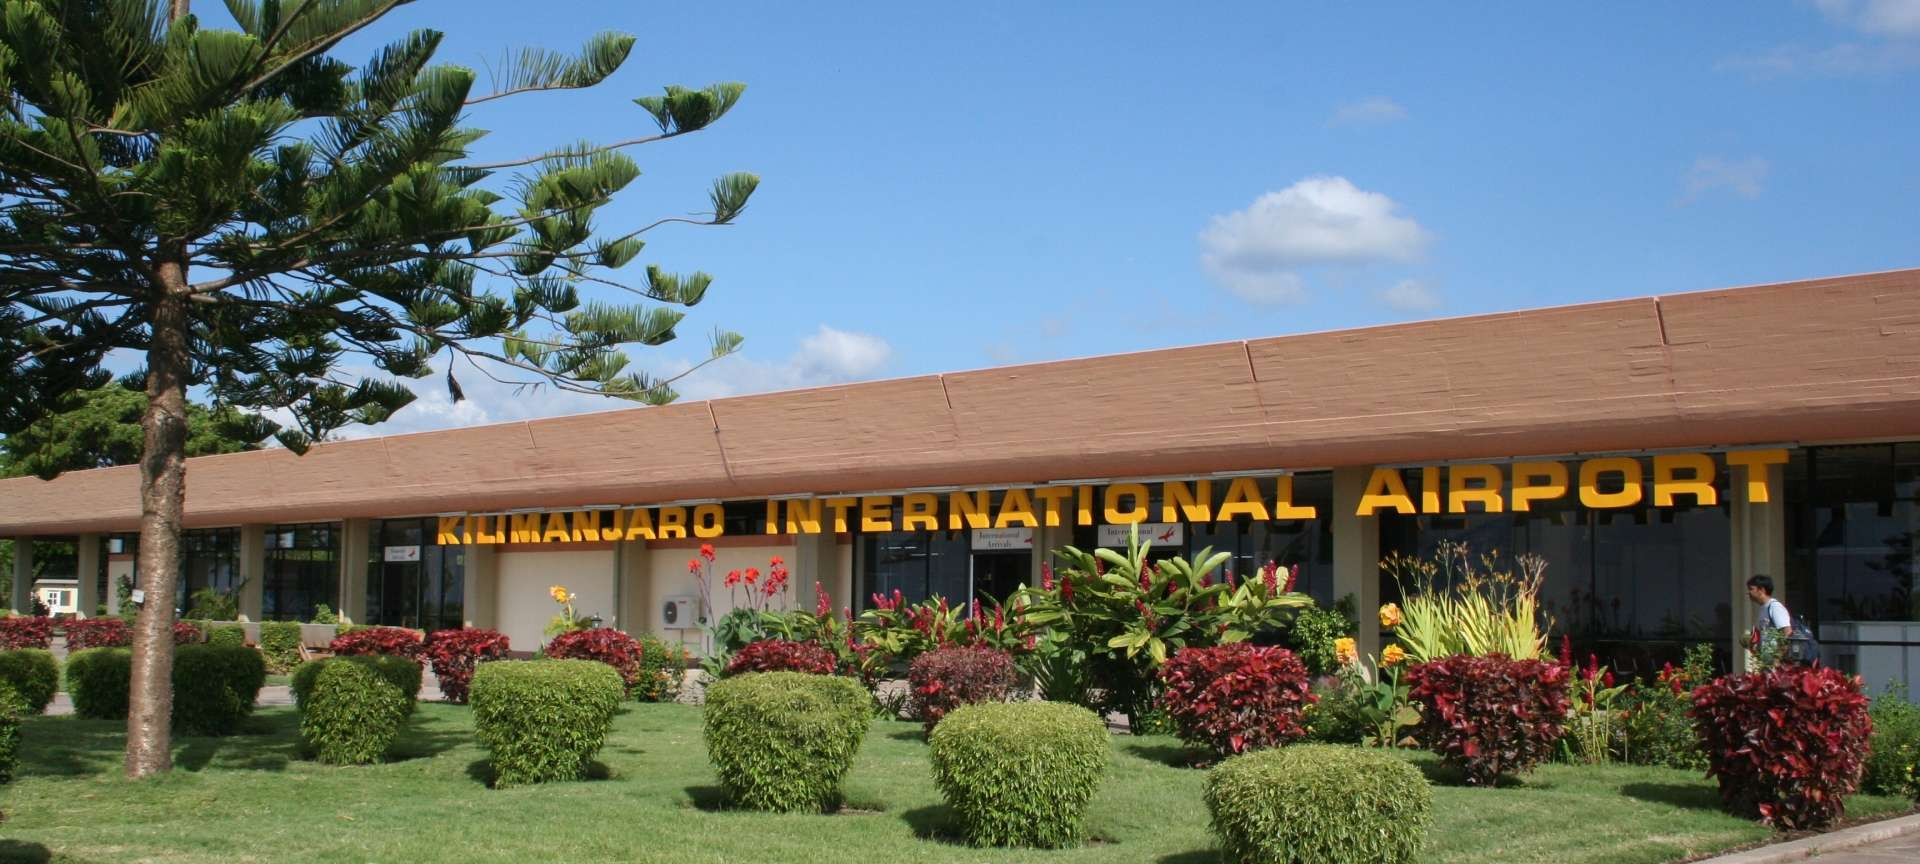 Kilimanjaro Airport safaris, tours and holiday packages